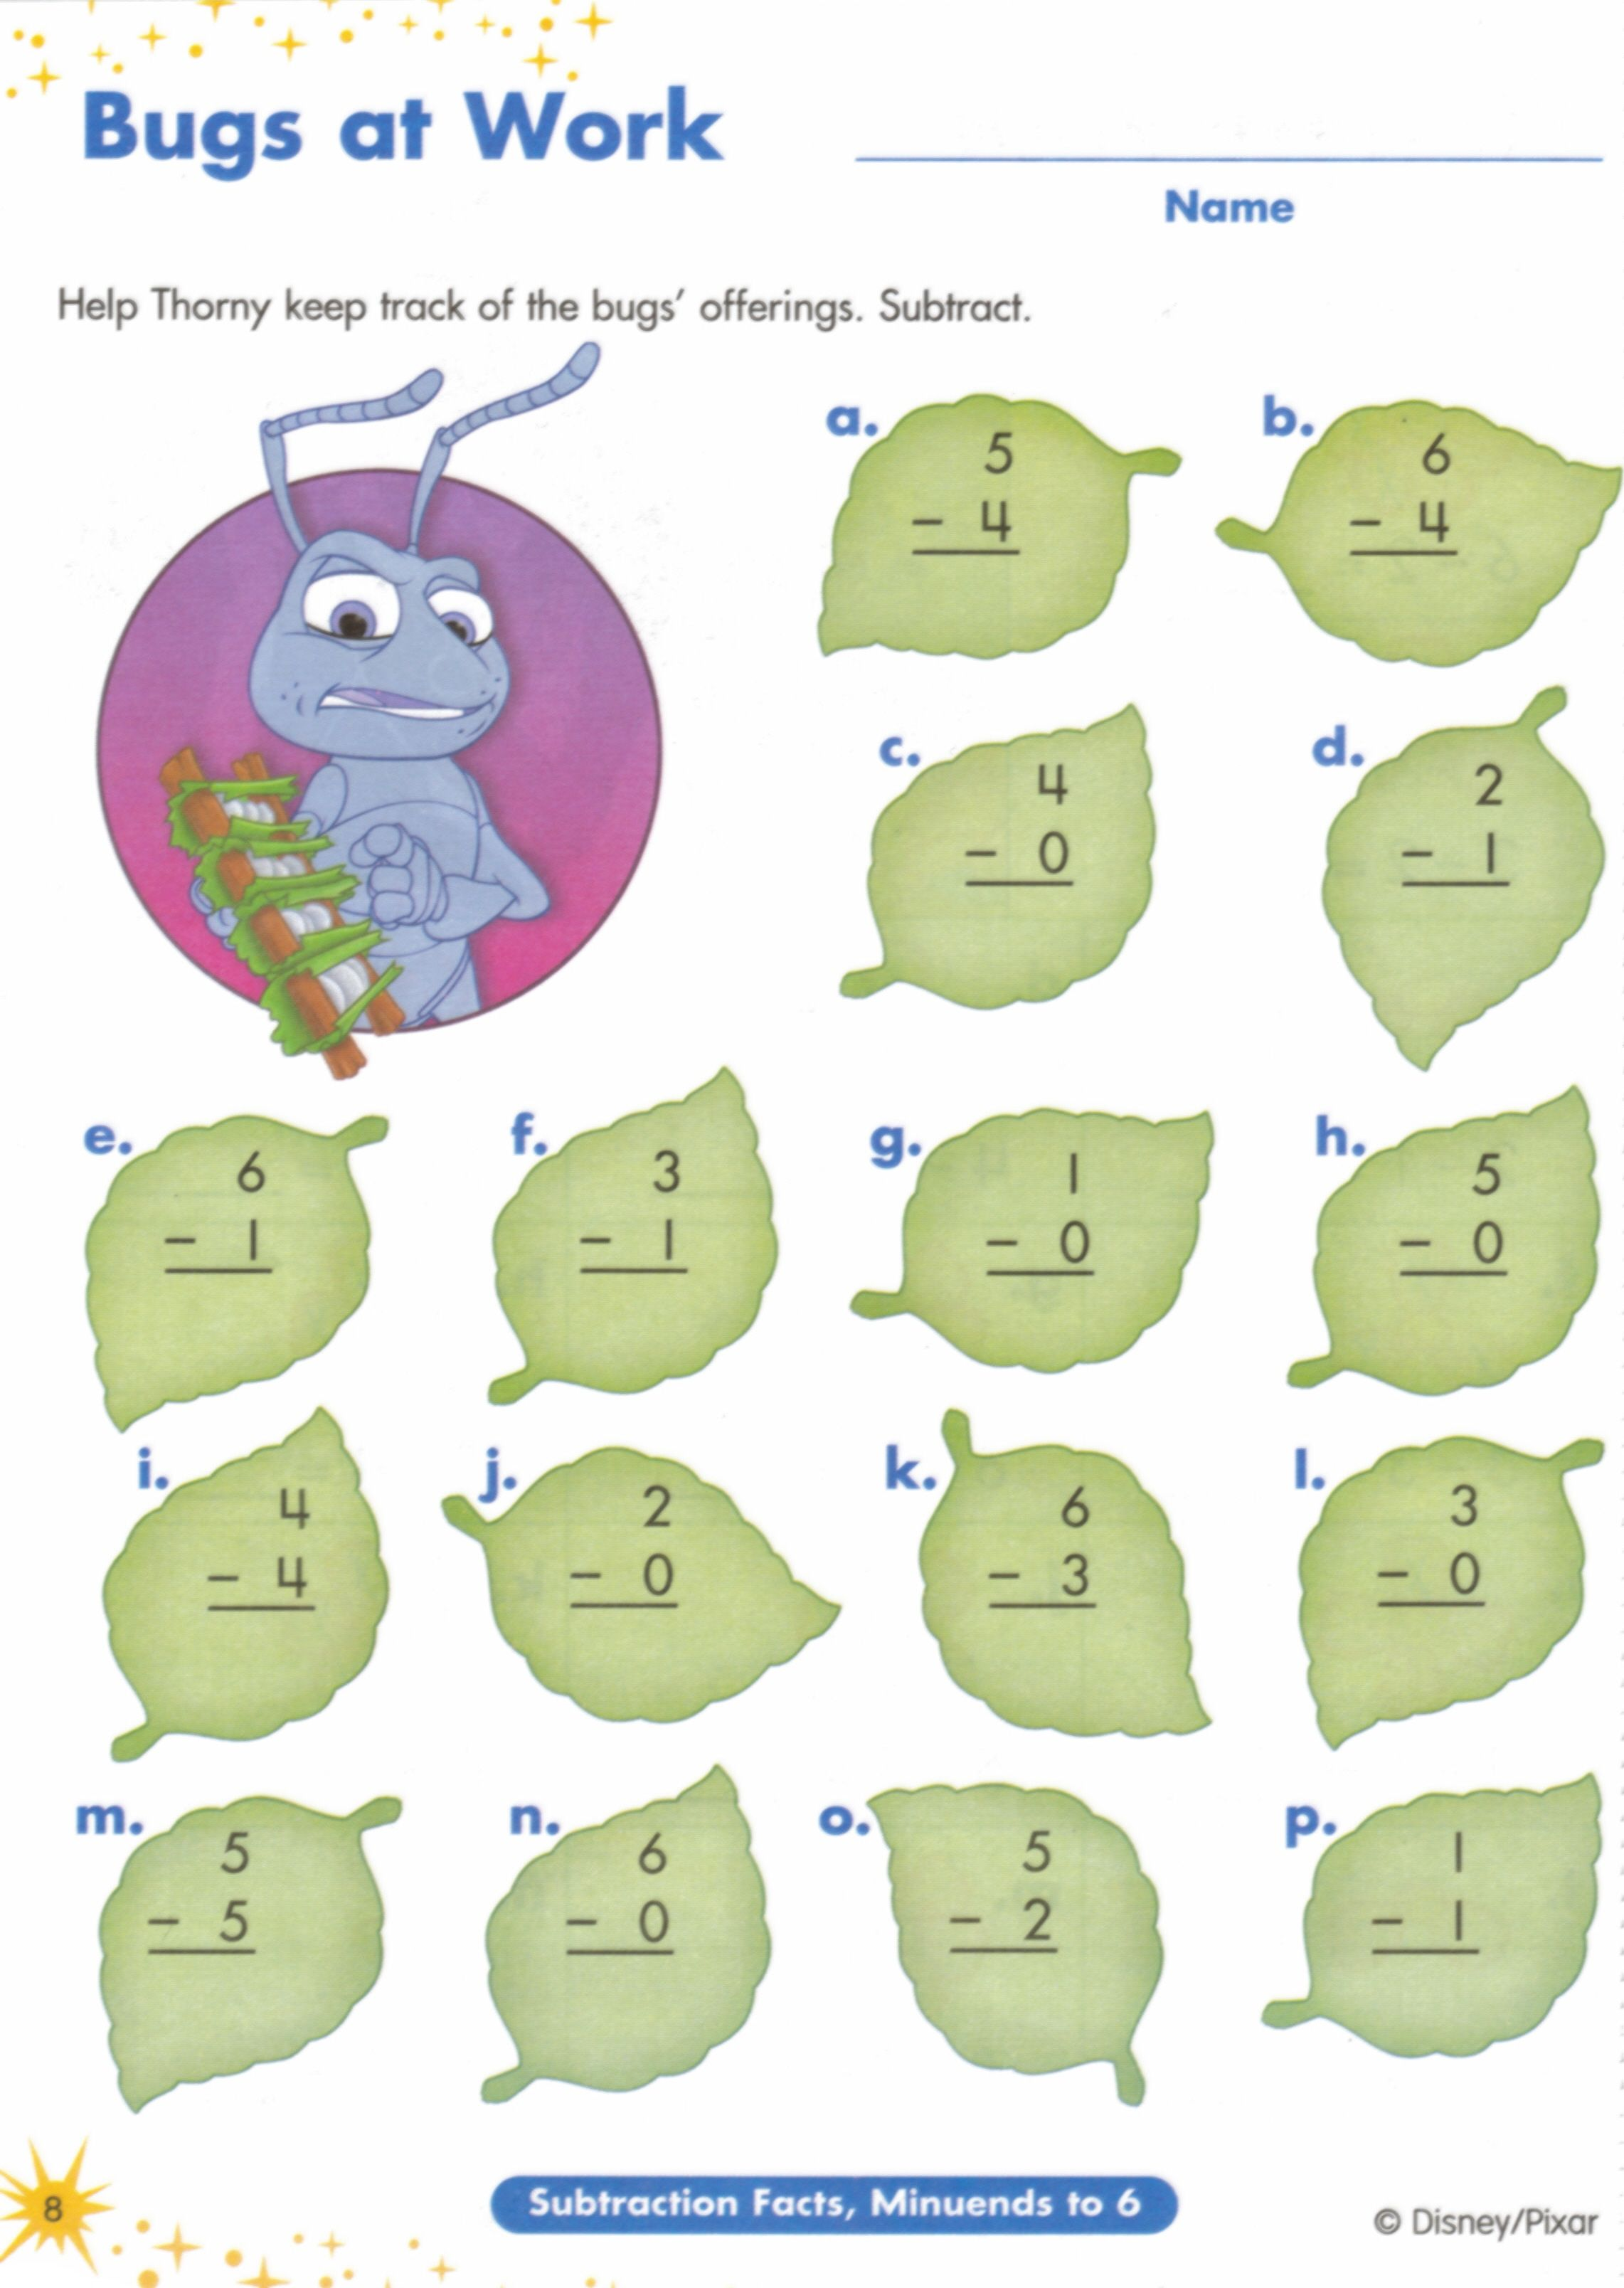 Proatmealus  Scenic  Images About Worksheets On Pinterest  Fun Facts For Kids  With Engaging  Images About Worksheets On Pinterest  Fun Facts For Kids Earth Day Worksheets And Jungles With Cute Number Names Worksheets Also Caption Writing Worksheet In Addition Compound Complex Worksheets And Primary Music Worksheets As Well As Using Colons Worksheet Additionally Writing Worksheet For Kids From Pinterestcom With Proatmealus  Engaging  Images About Worksheets On Pinterest  Fun Facts For Kids  With Cute  Images About Worksheets On Pinterest  Fun Facts For Kids Earth Day Worksheets And Jungles And Scenic Number Names Worksheets Also Caption Writing Worksheet In Addition Compound Complex Worksheets From Pinterestcom